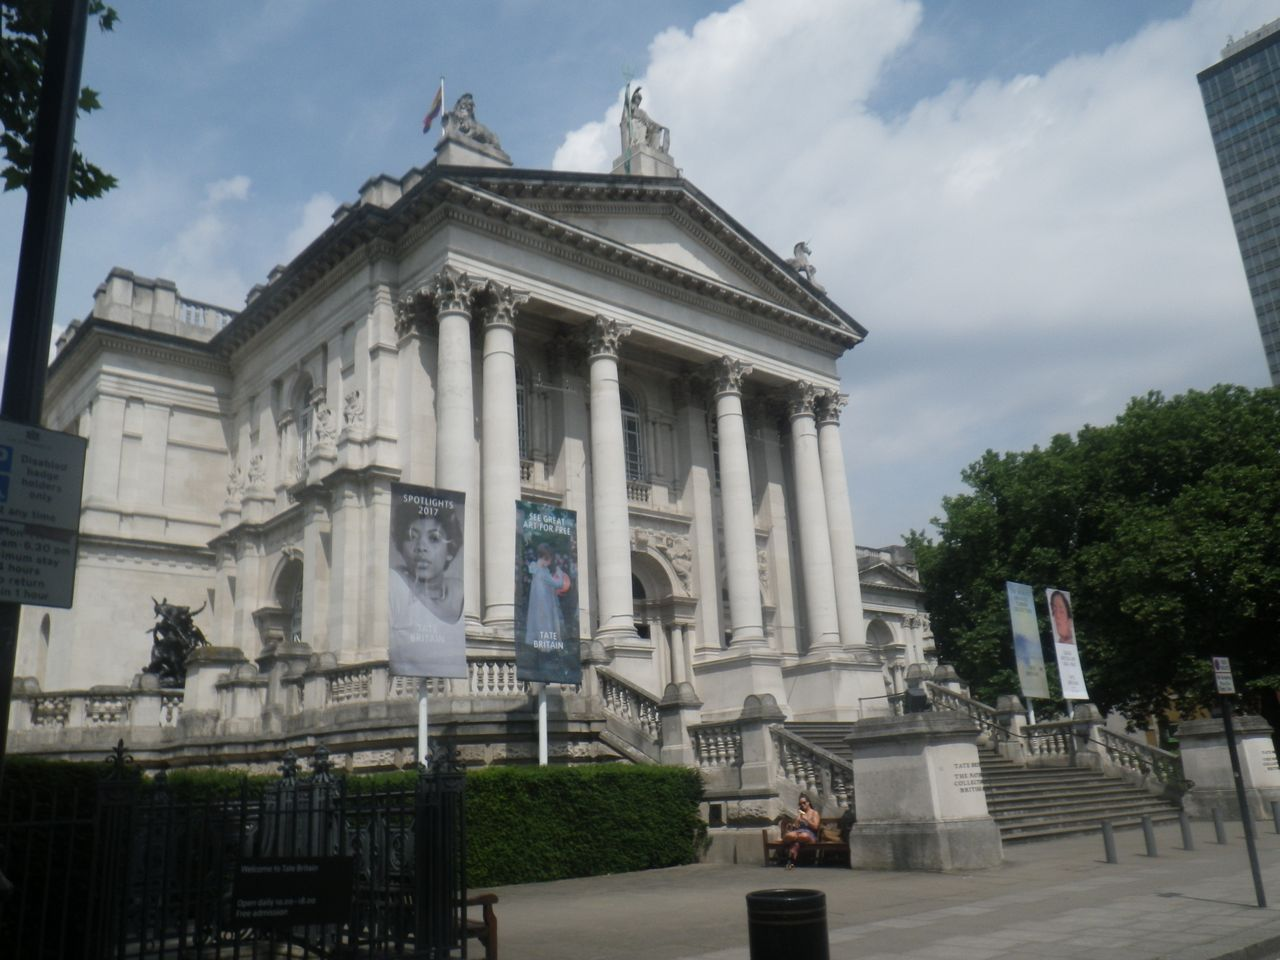 Where to stay in London best areas Tate Britain - just over the water from MI5